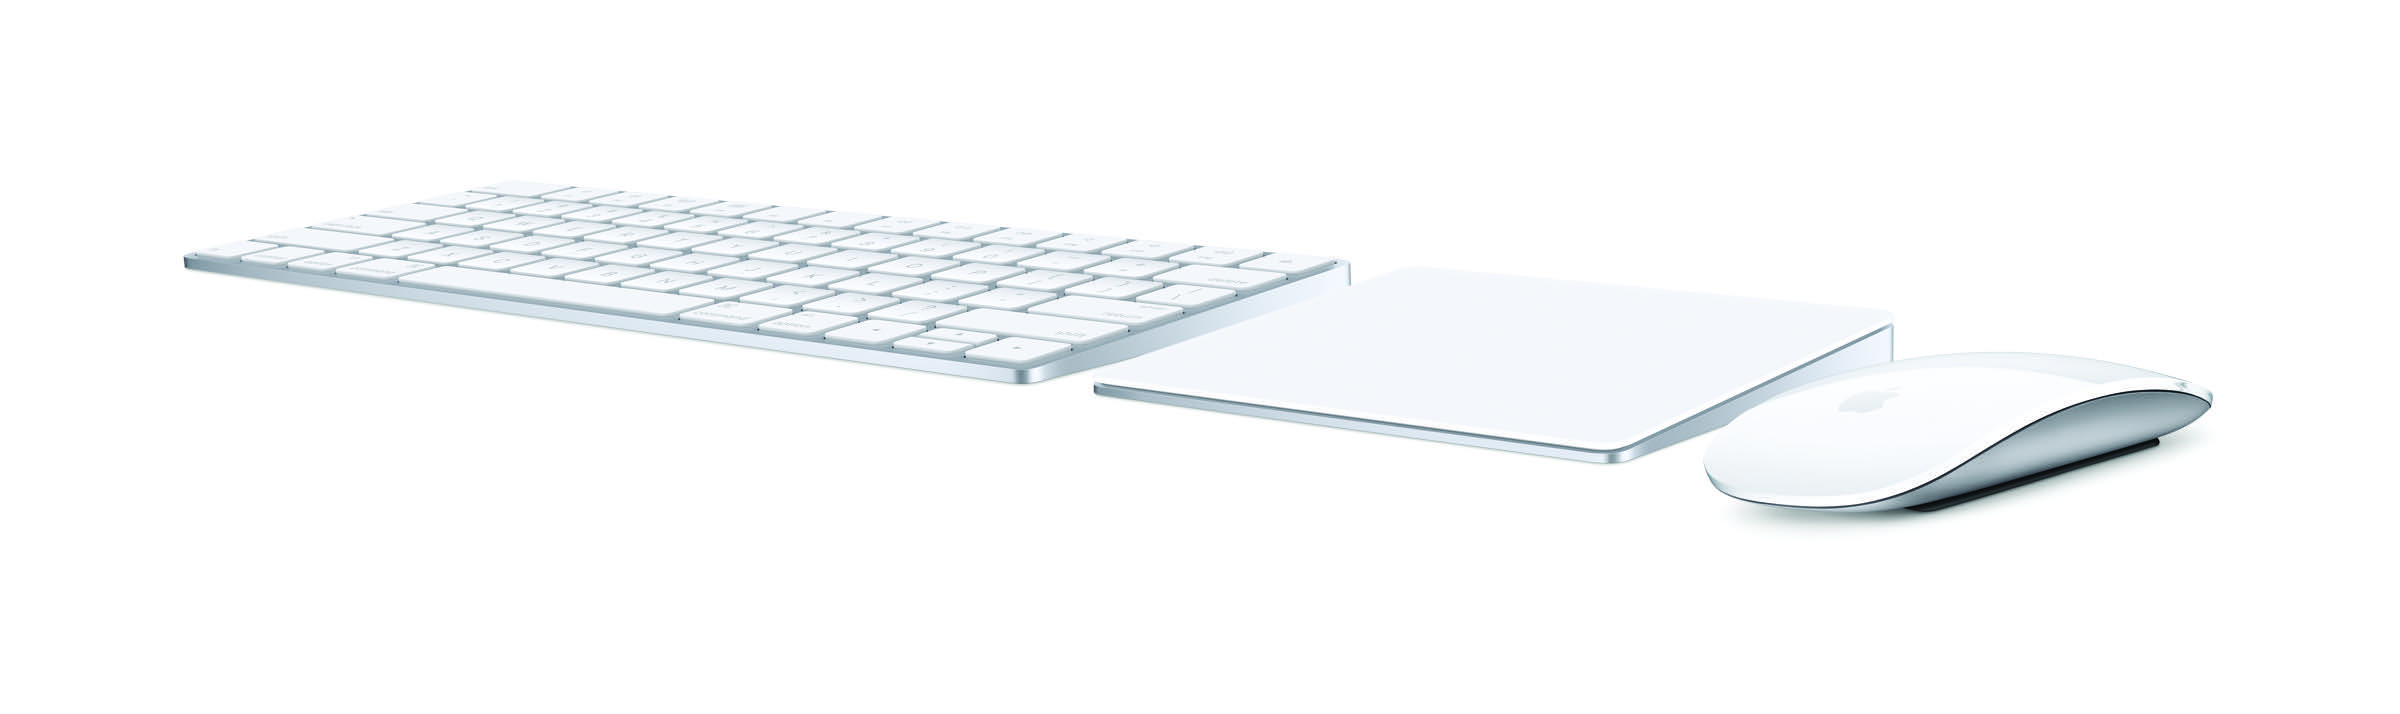 Magic Keyboard, Magic Mouse 2 und Magic Trackpad 2 bringt Force Touch auf den Desktop.